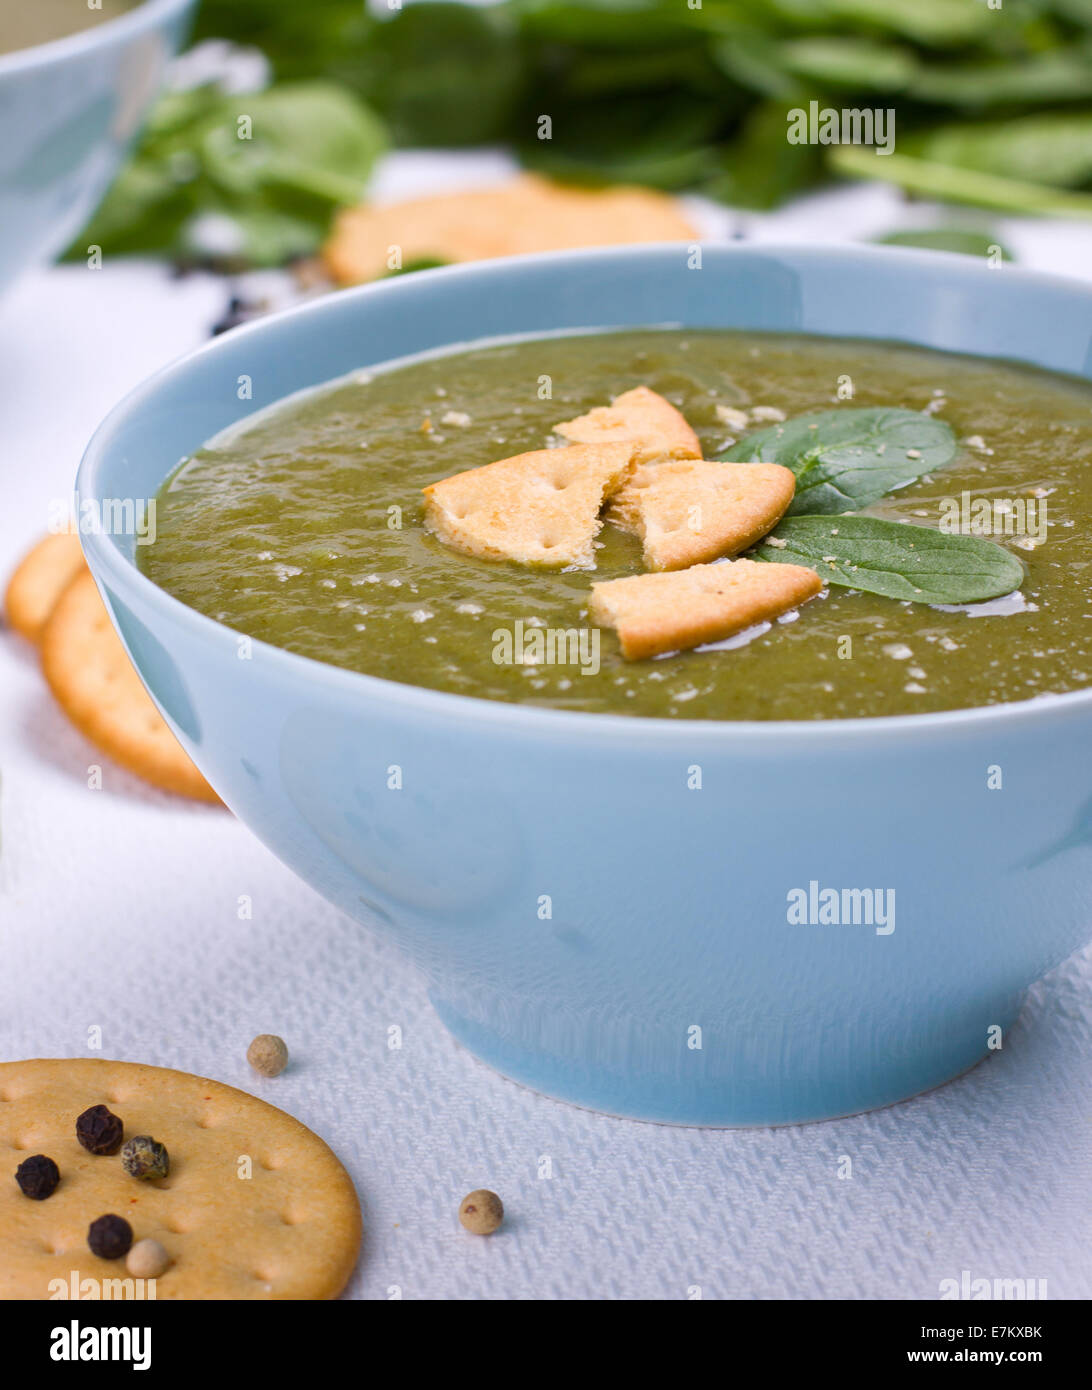 Portion of pureed spinach soup - Stock Image